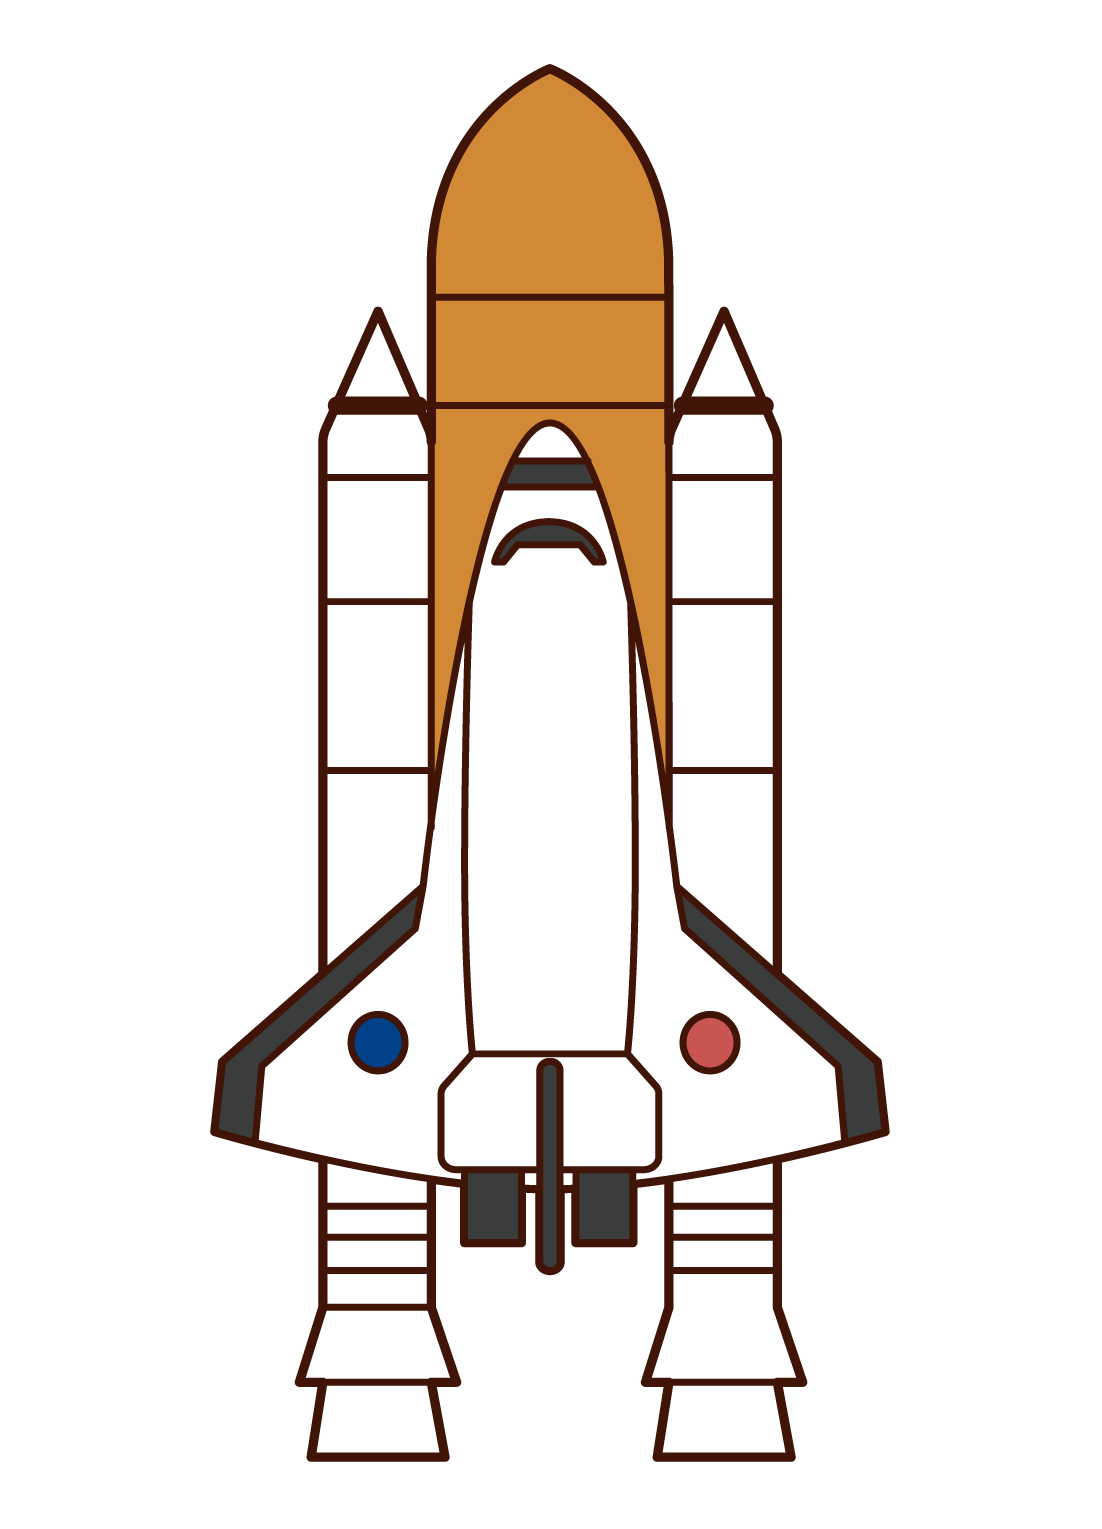 Illustration of the Space Shuttle